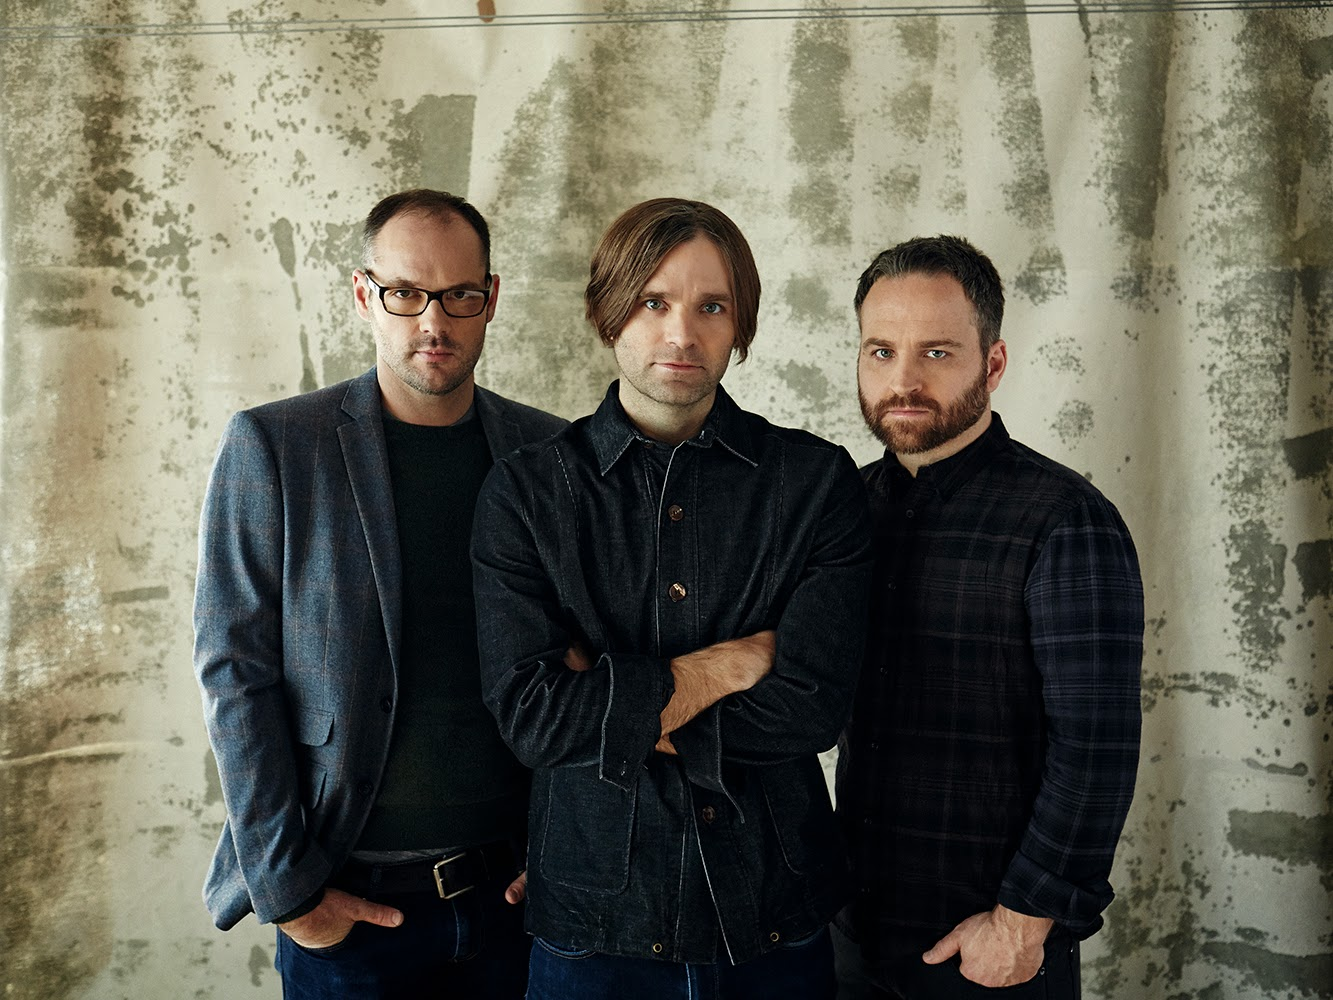 death cab for cutie ben gibbard nick harmer kintsugi codes and keys narrow stairs plans transatlanticism the photo album